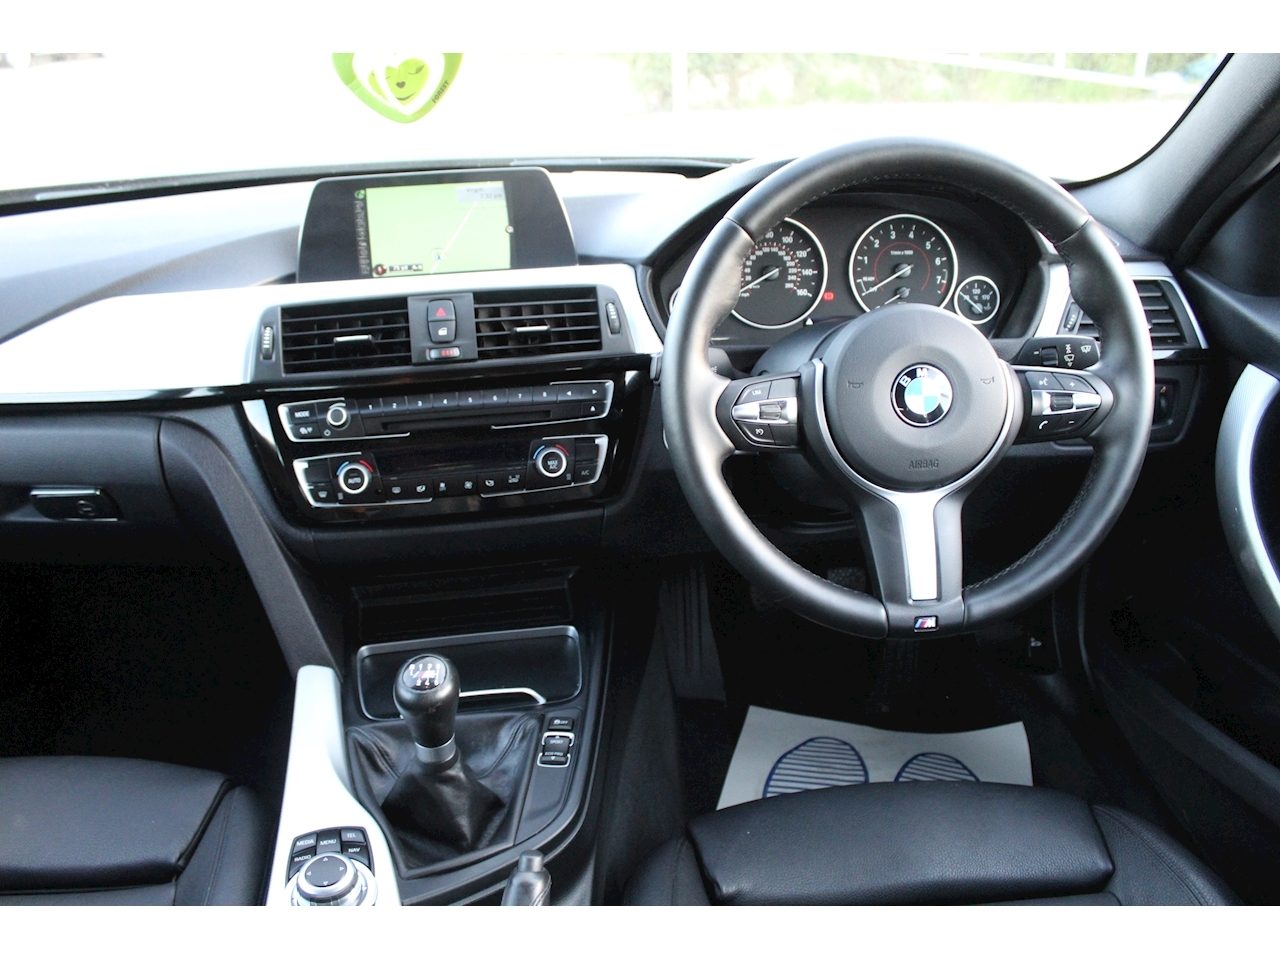 BMW 3 Series 320I M Sport Saloon 2.0 Manual Petrol